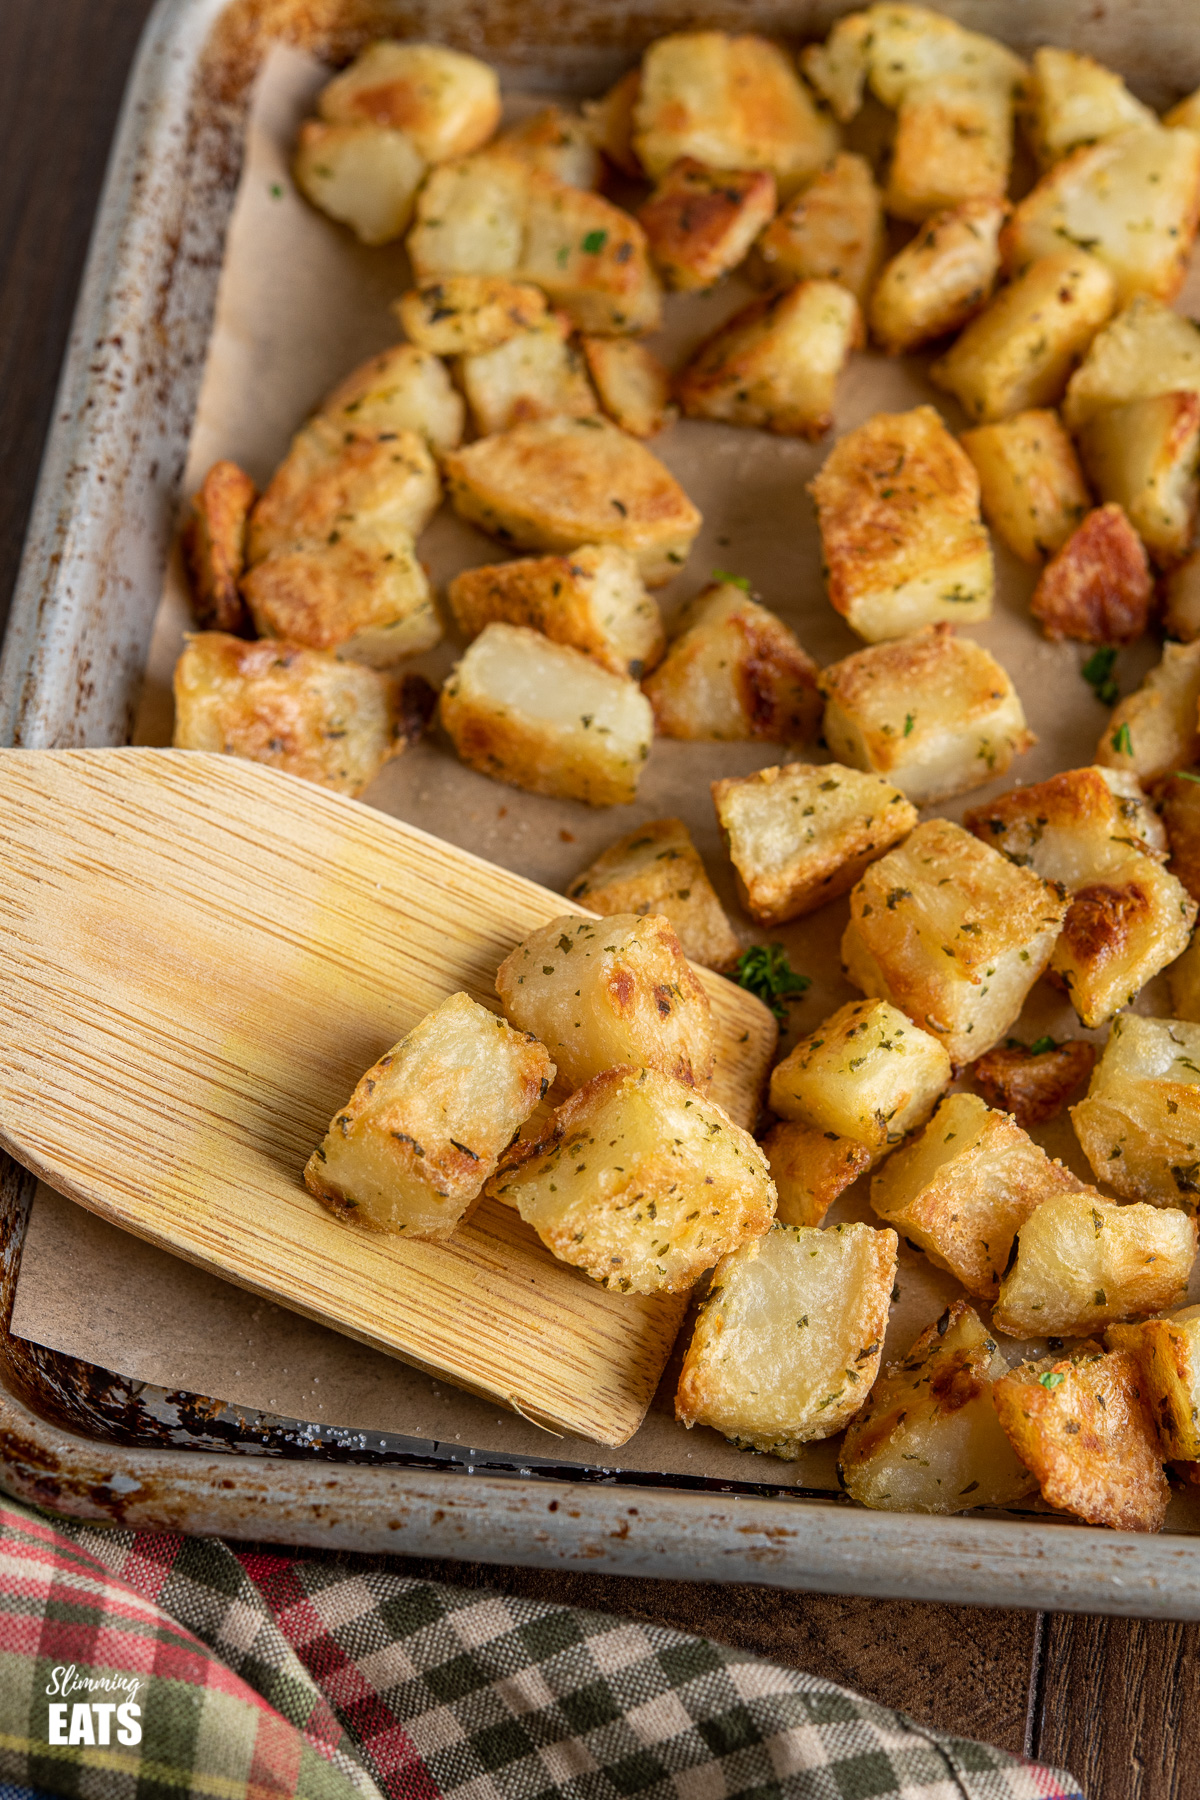 close up of Garlic and Herb Roasted Potatoes on a wooden spatula from baking tray